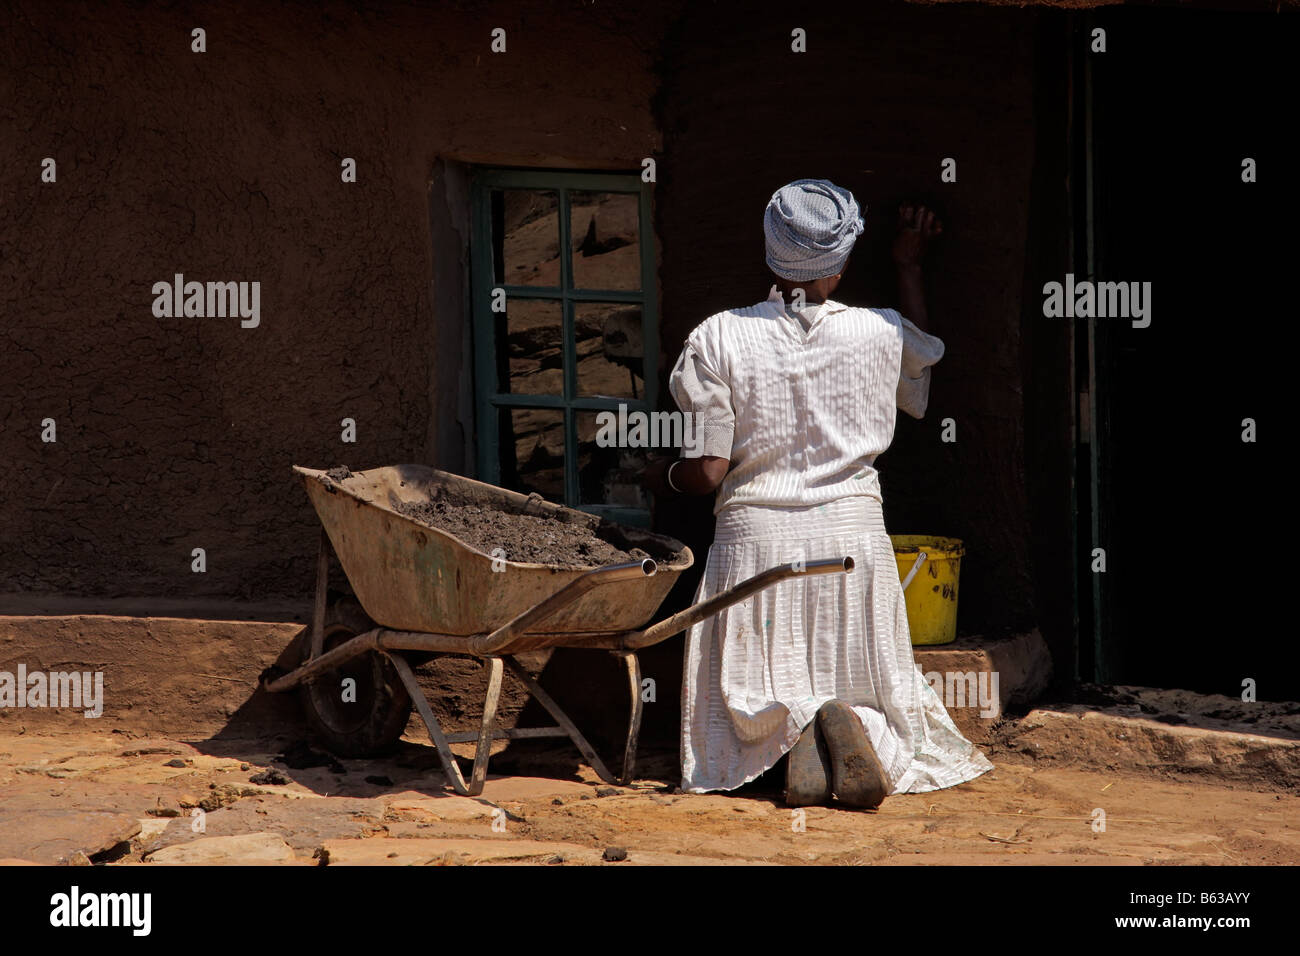 A Basuthu woman plastering the mud wall of a traditional South African Basuthu hut Stock Photo